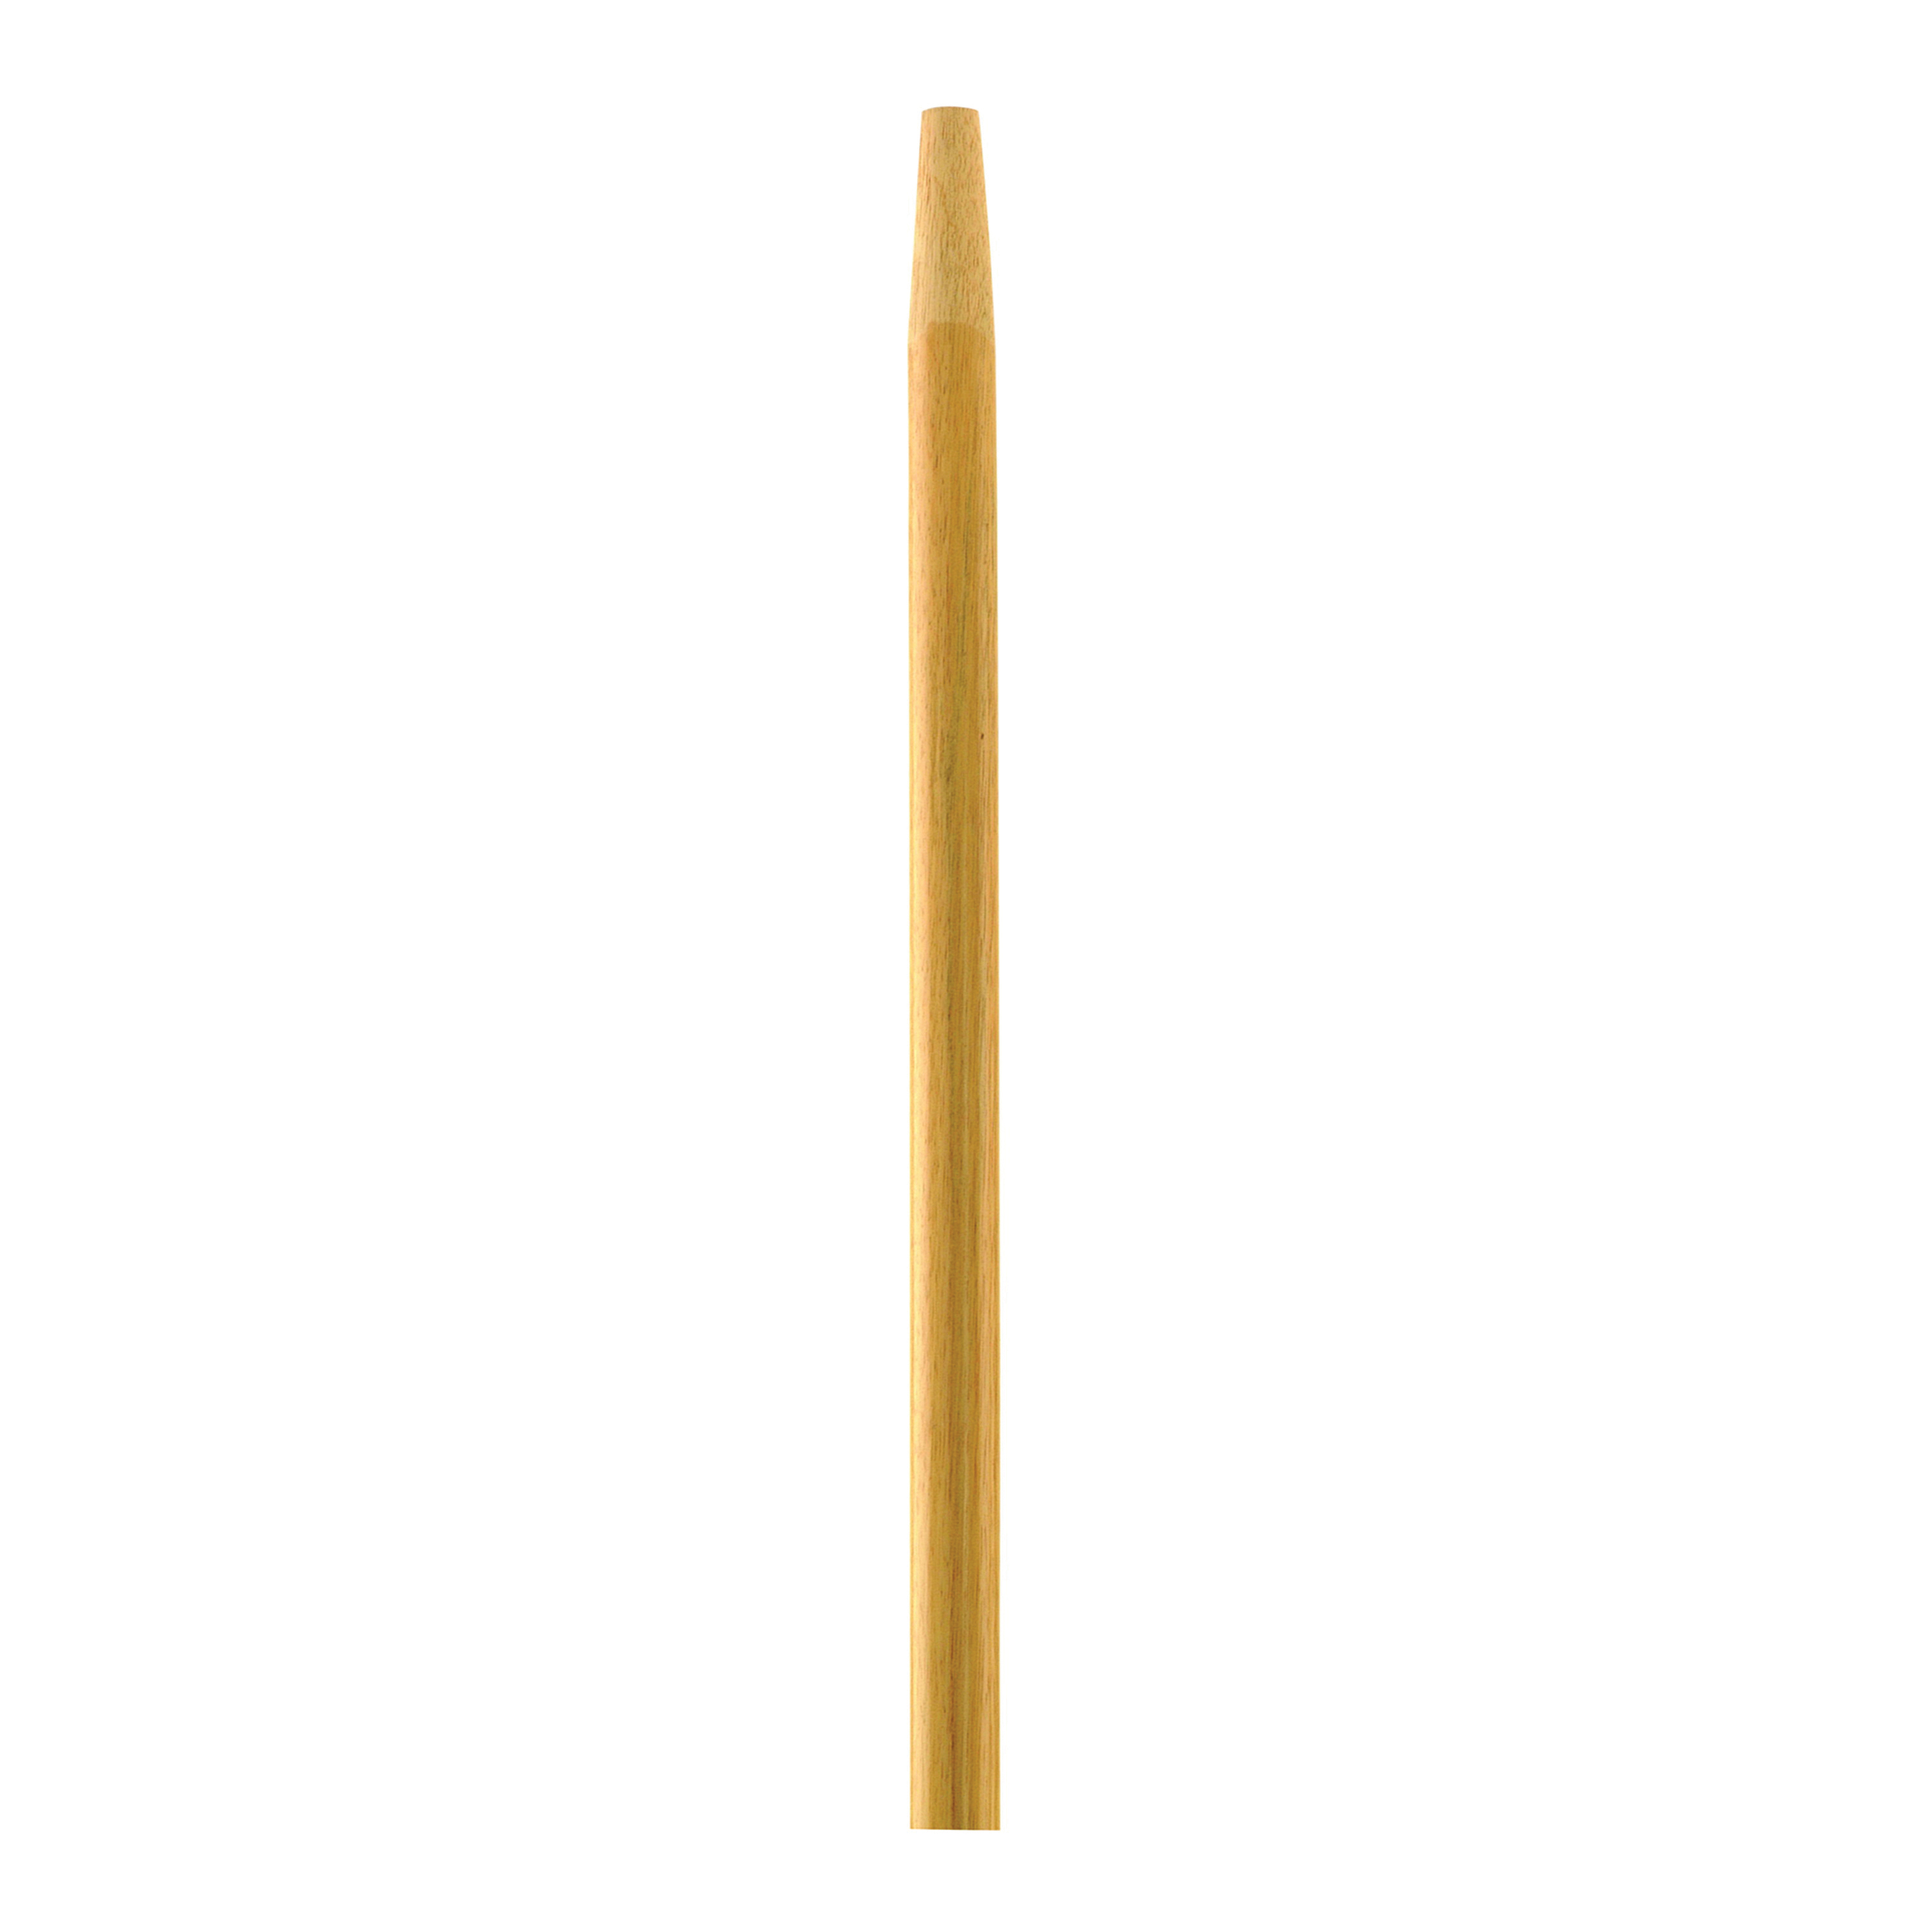 Picture of Quickie 54103 Broom Handle, 1-1/8 in Dia, 60 in L, Hardwood